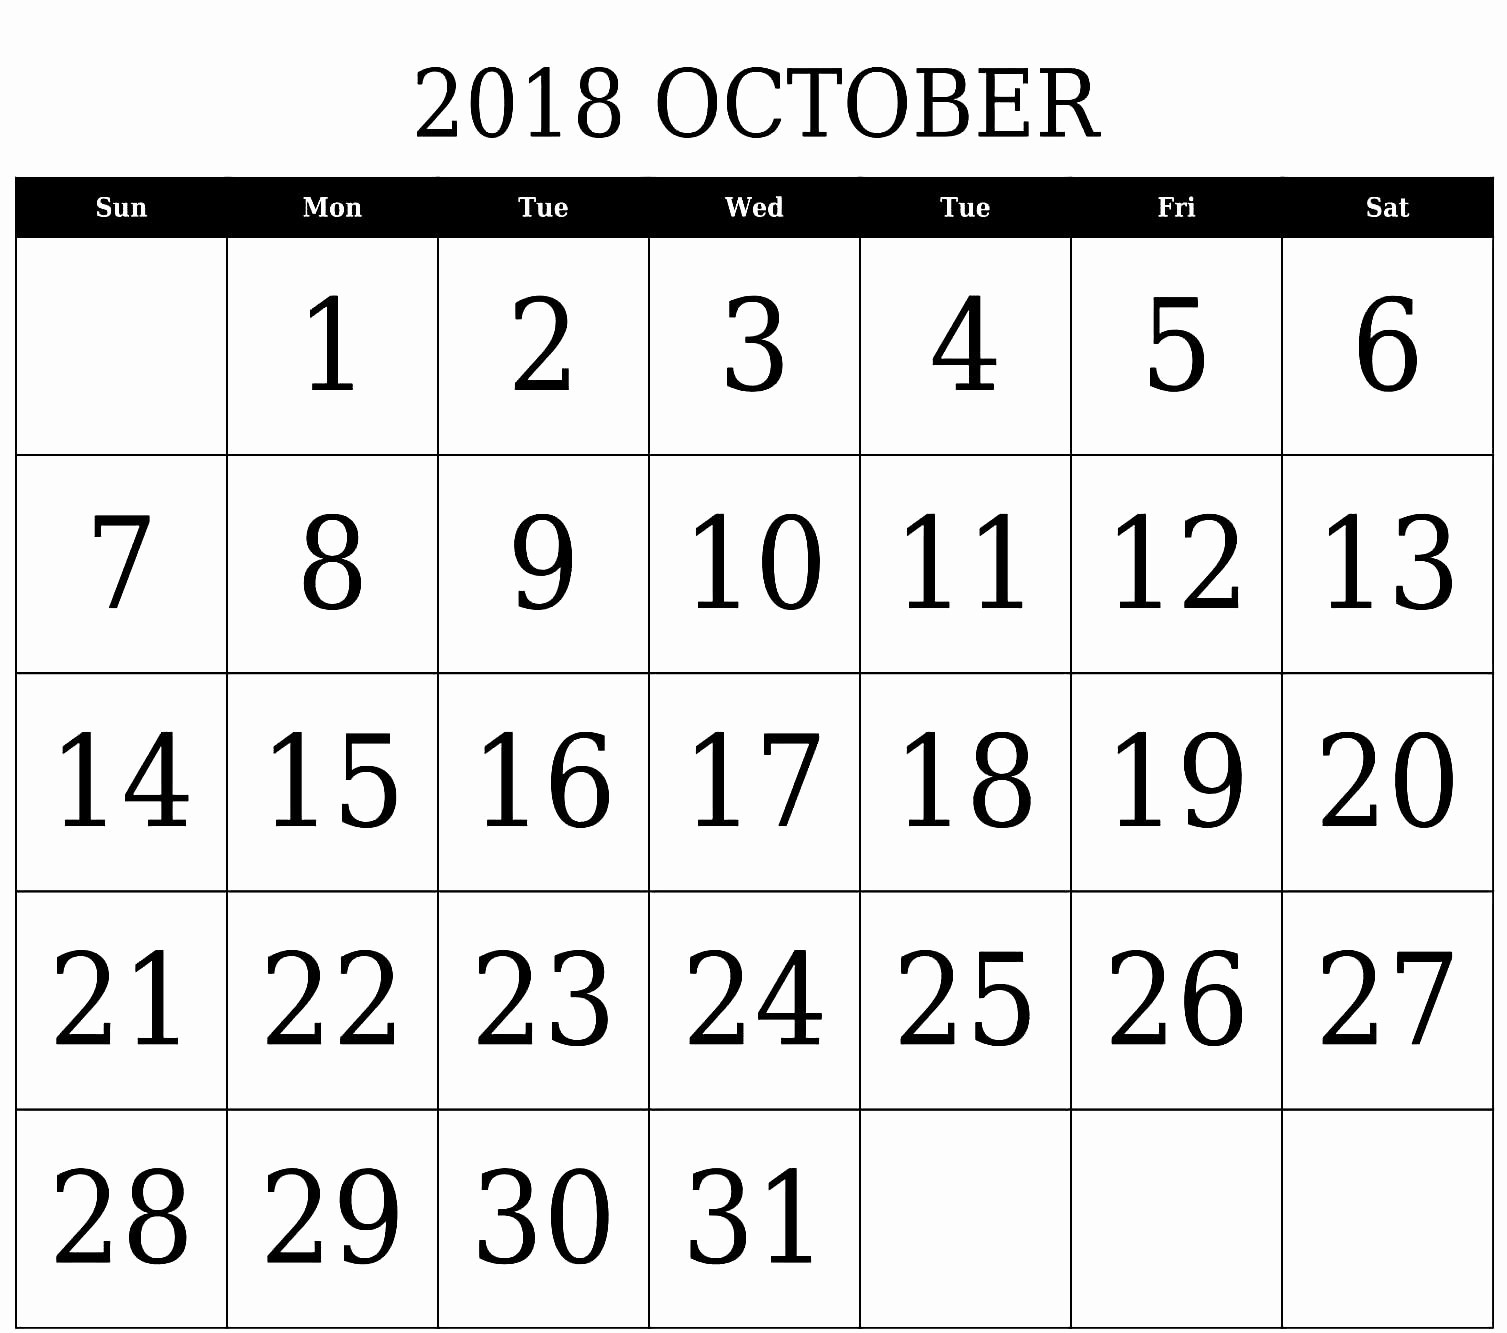 October 2018 Printable Calendar Word Awesome October 2018 Calendar Word